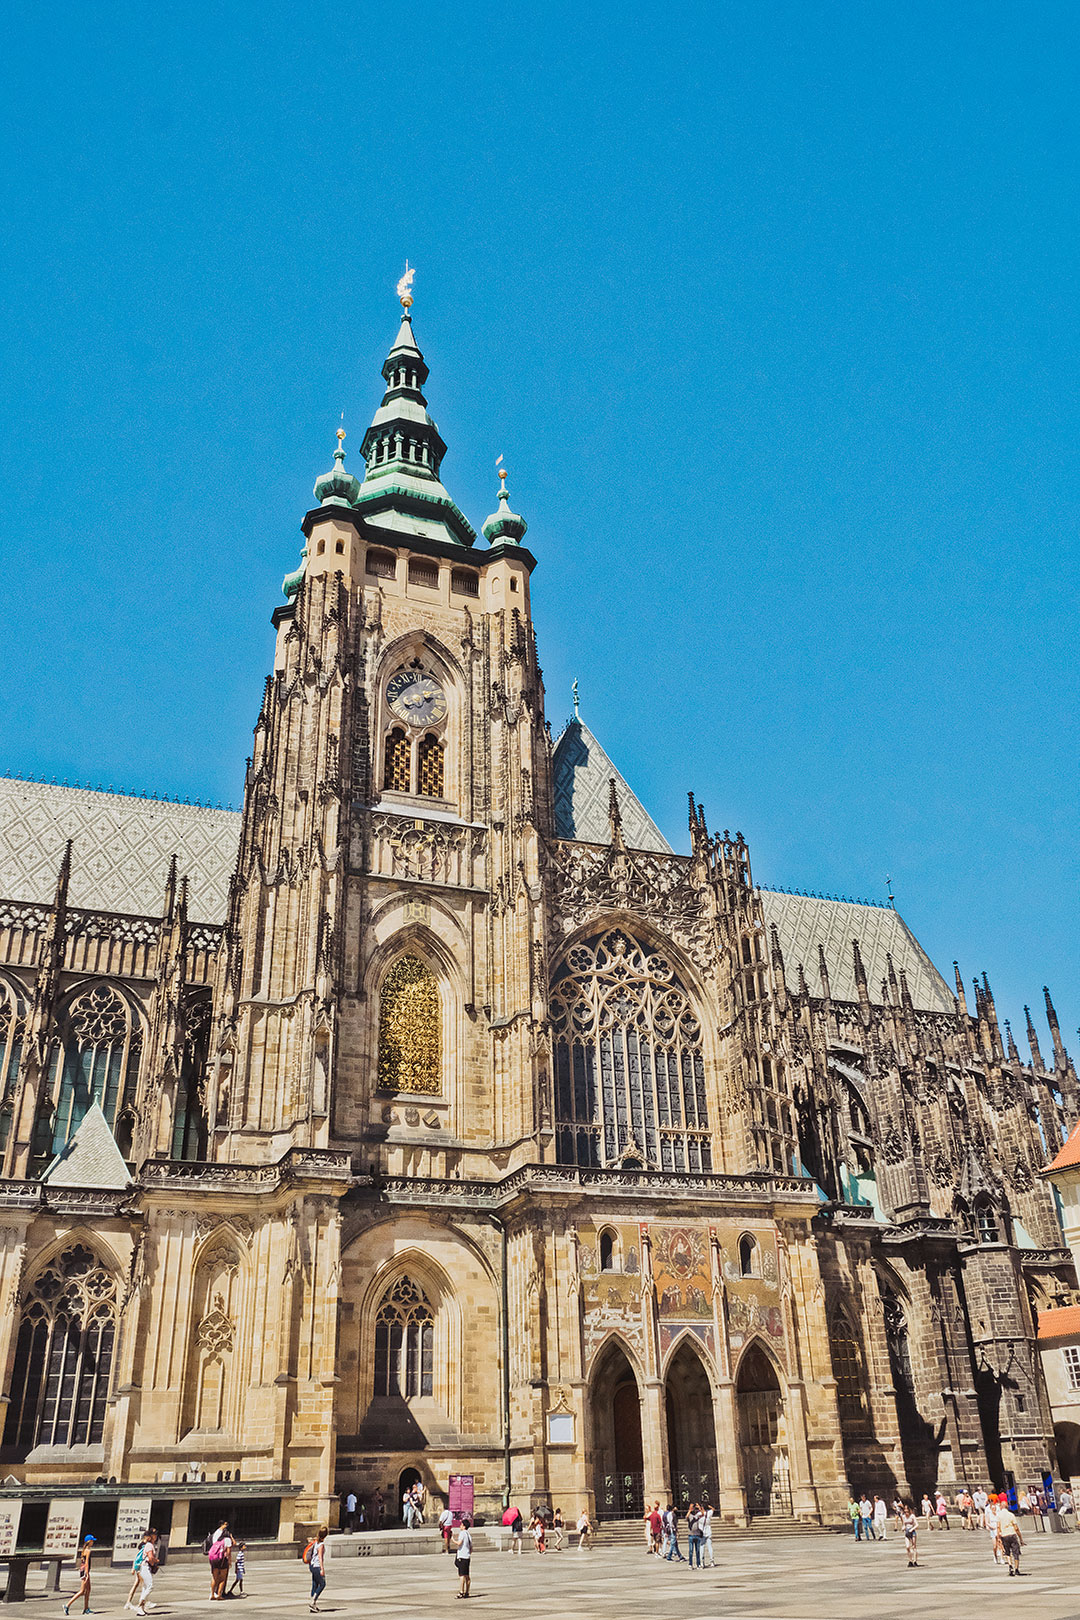 Praha Castle + 15 Incredible Things to Do in Prague